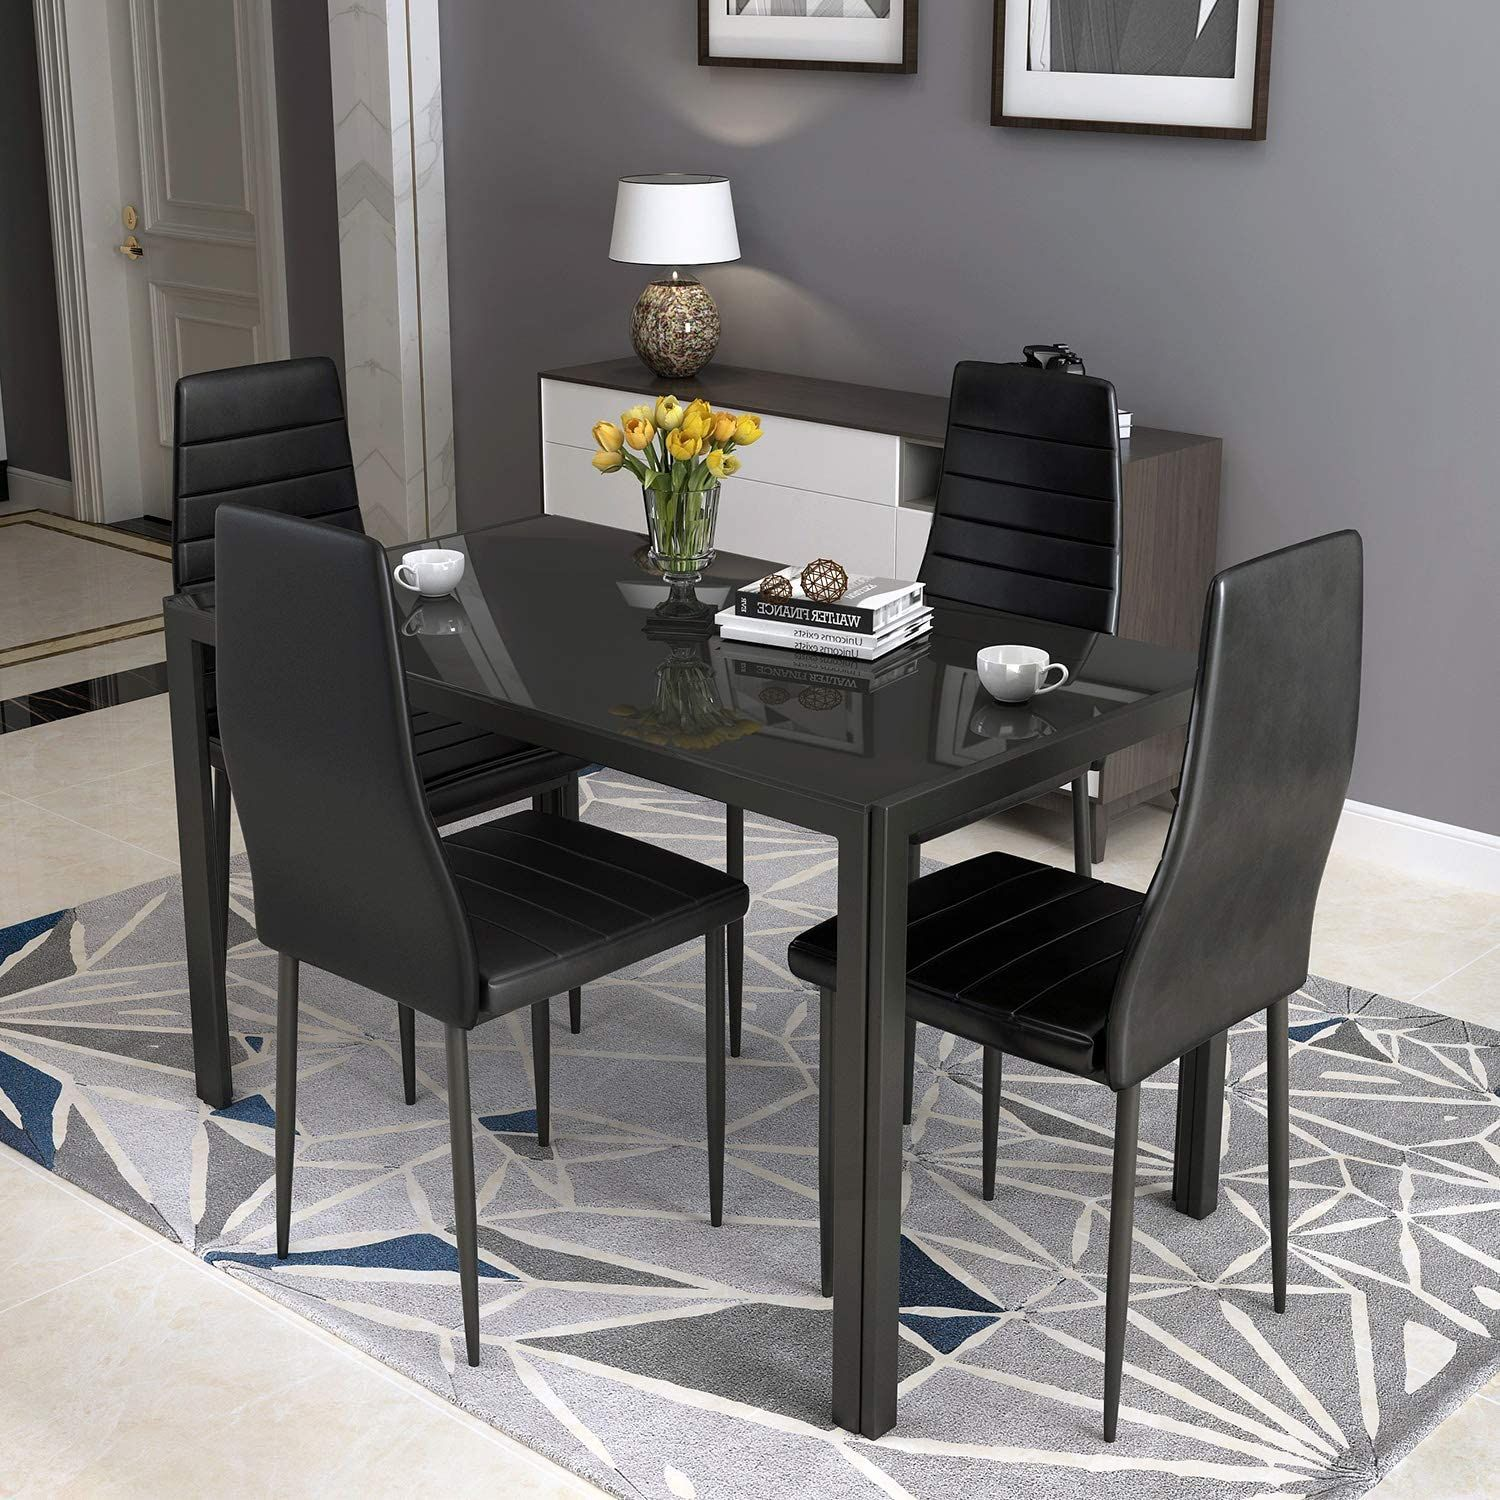 Hcromat 5 Piece Faux Dining Set Modern Metal Kitchen Table With High Back Chairs Home Furnitur In 2021 Modern Dining Table Set Small Dining Table Modern Metal Kitchen